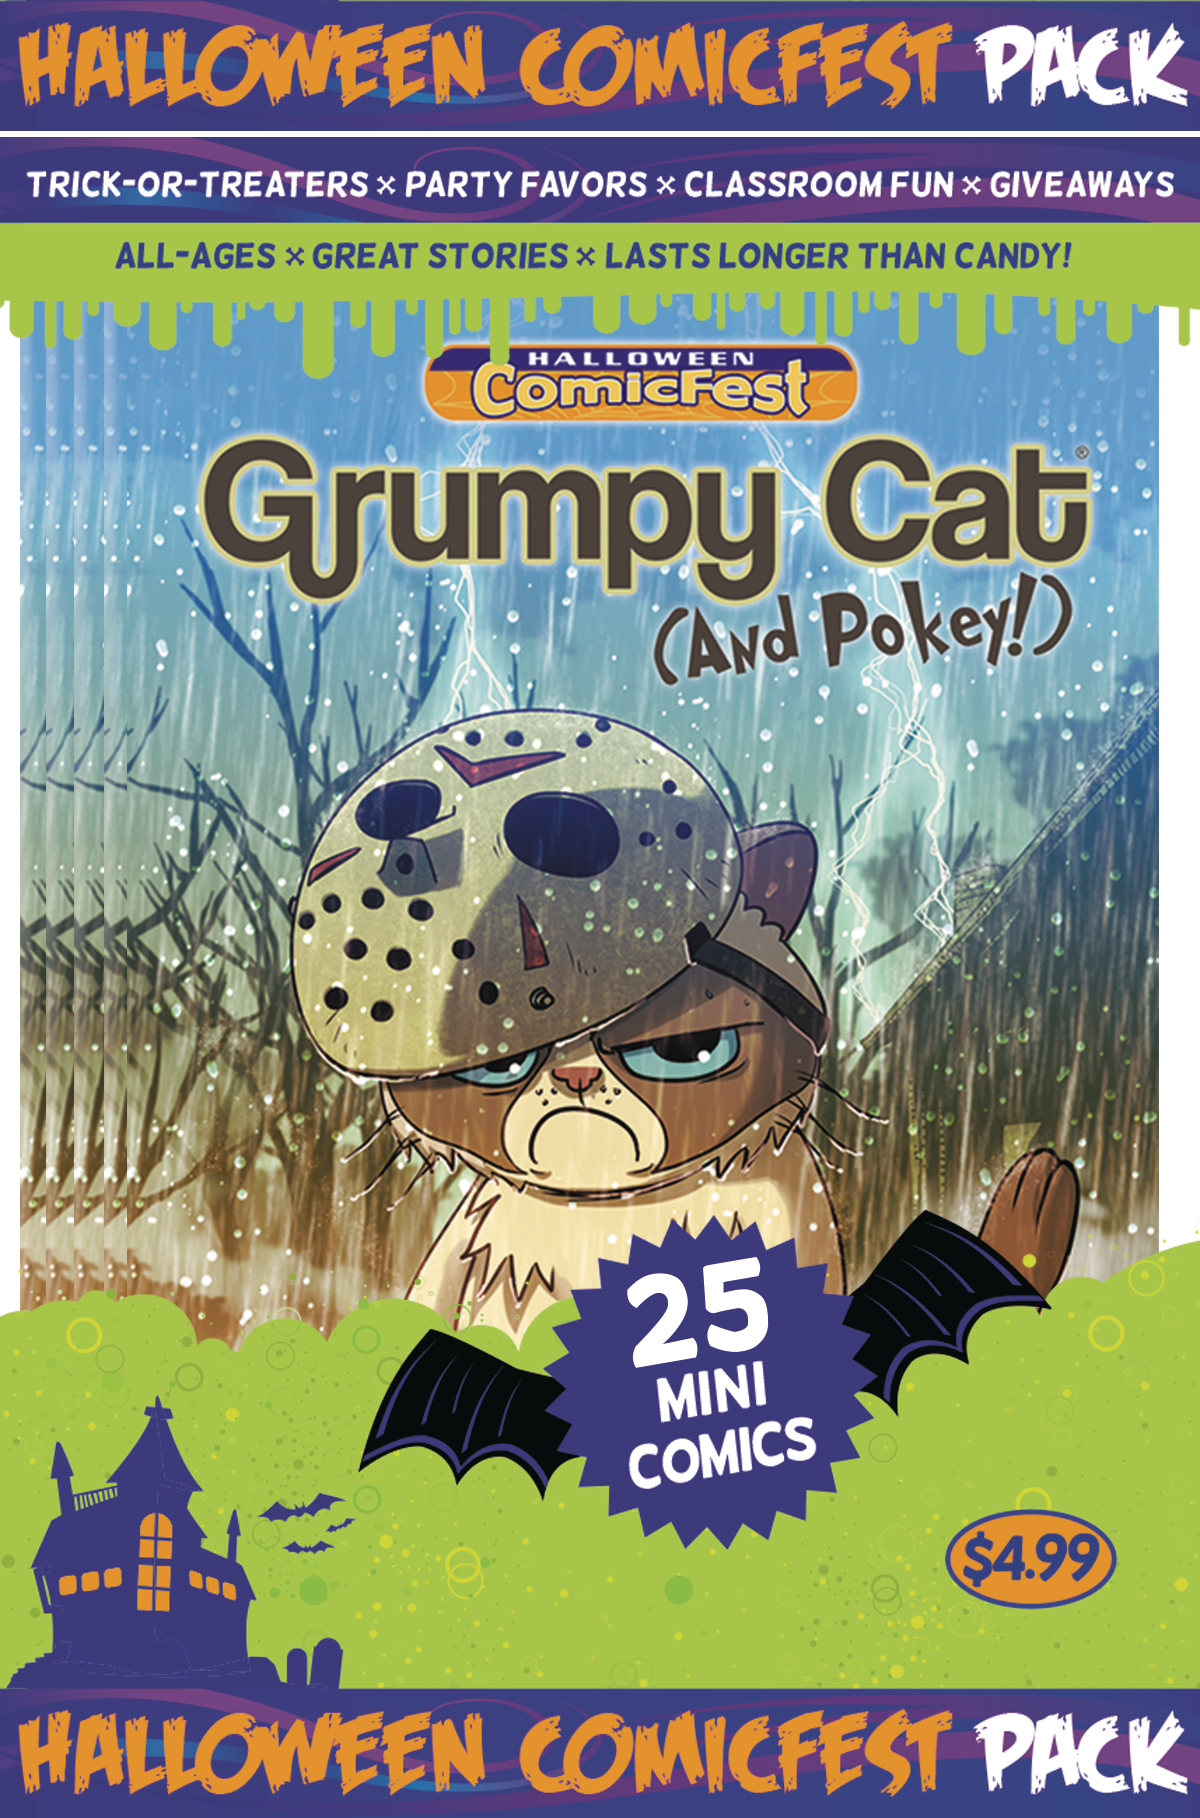 HCF 2016 GRUMPY CAT HALLOWEEN MINI COMIC POLYPACK